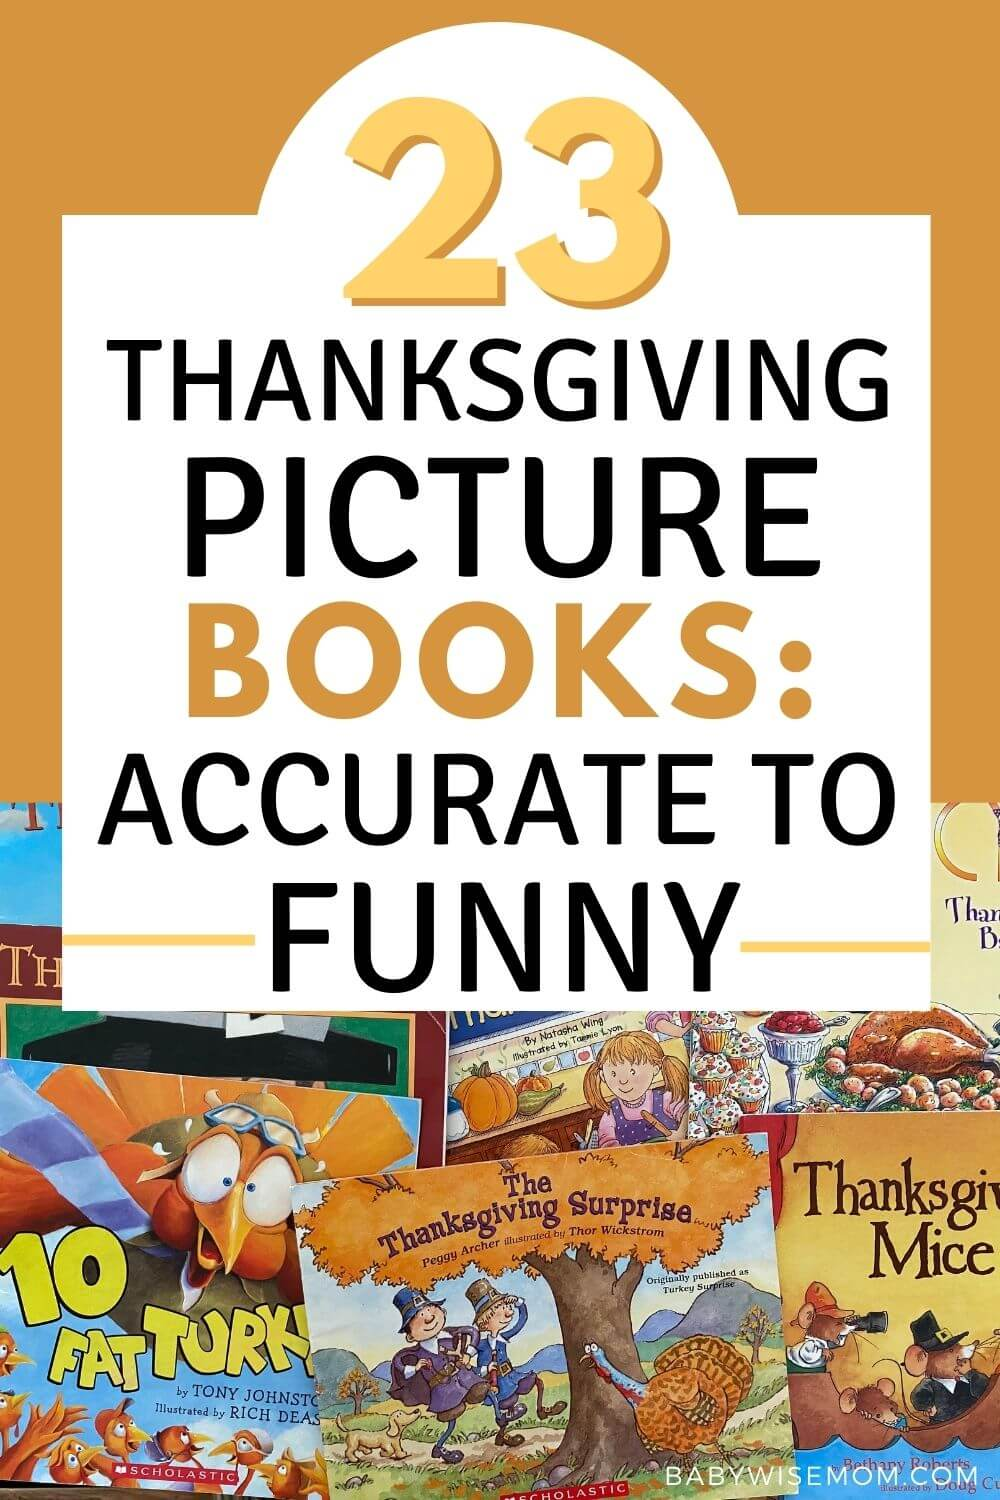 23 Thanksgiving picture books pinnable image